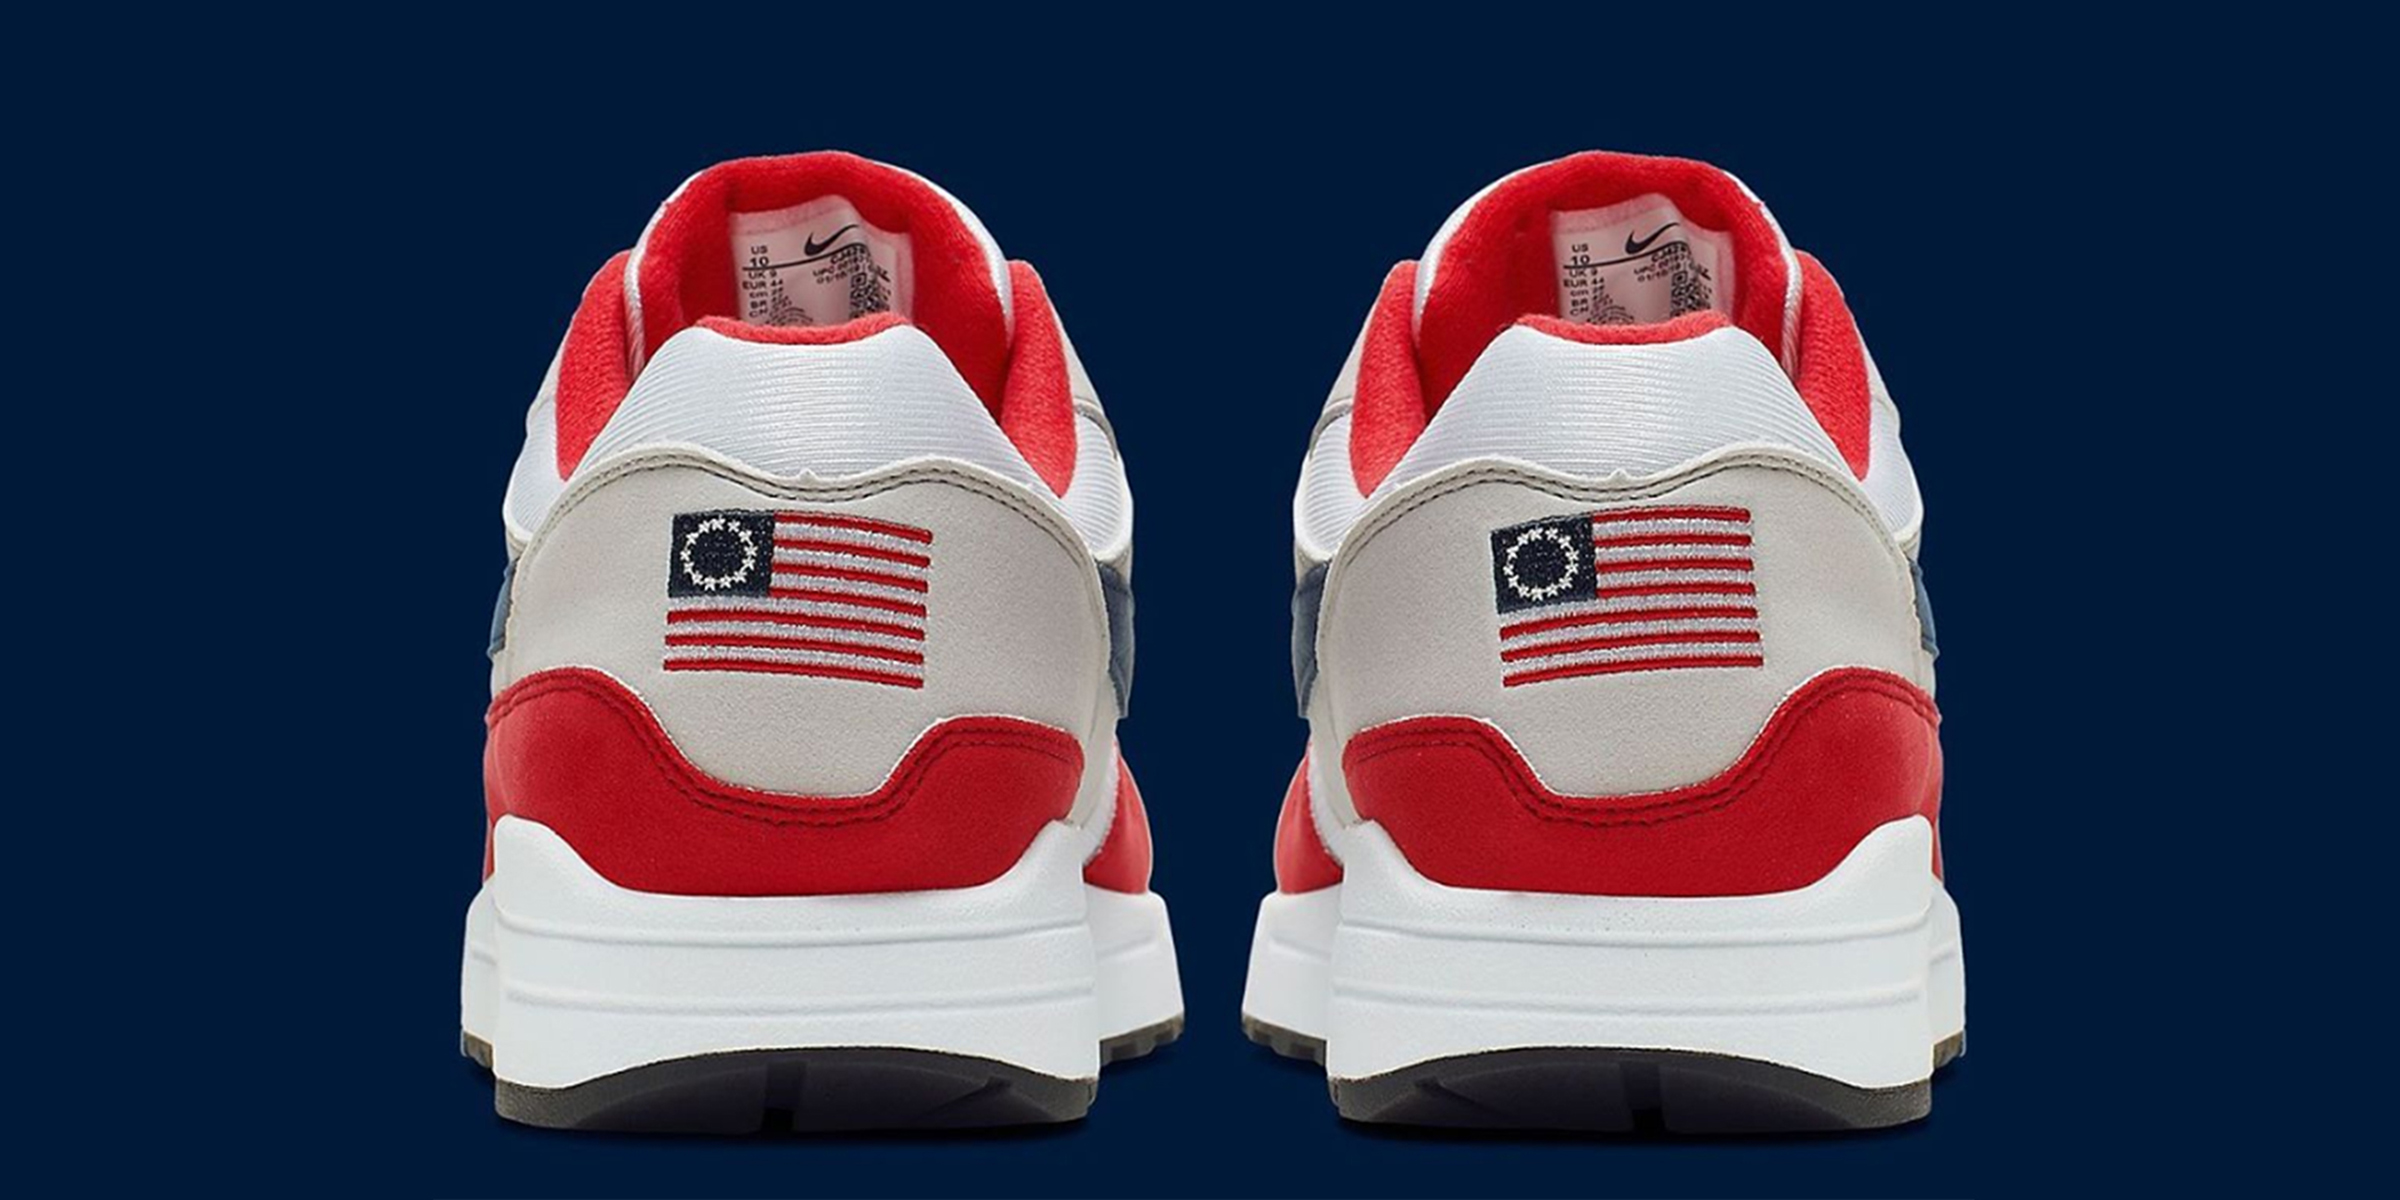 muy genial encanto de costo variedades anchas Nike pulls Betsy Ross flag sneakers after Colin Kaepernick ...